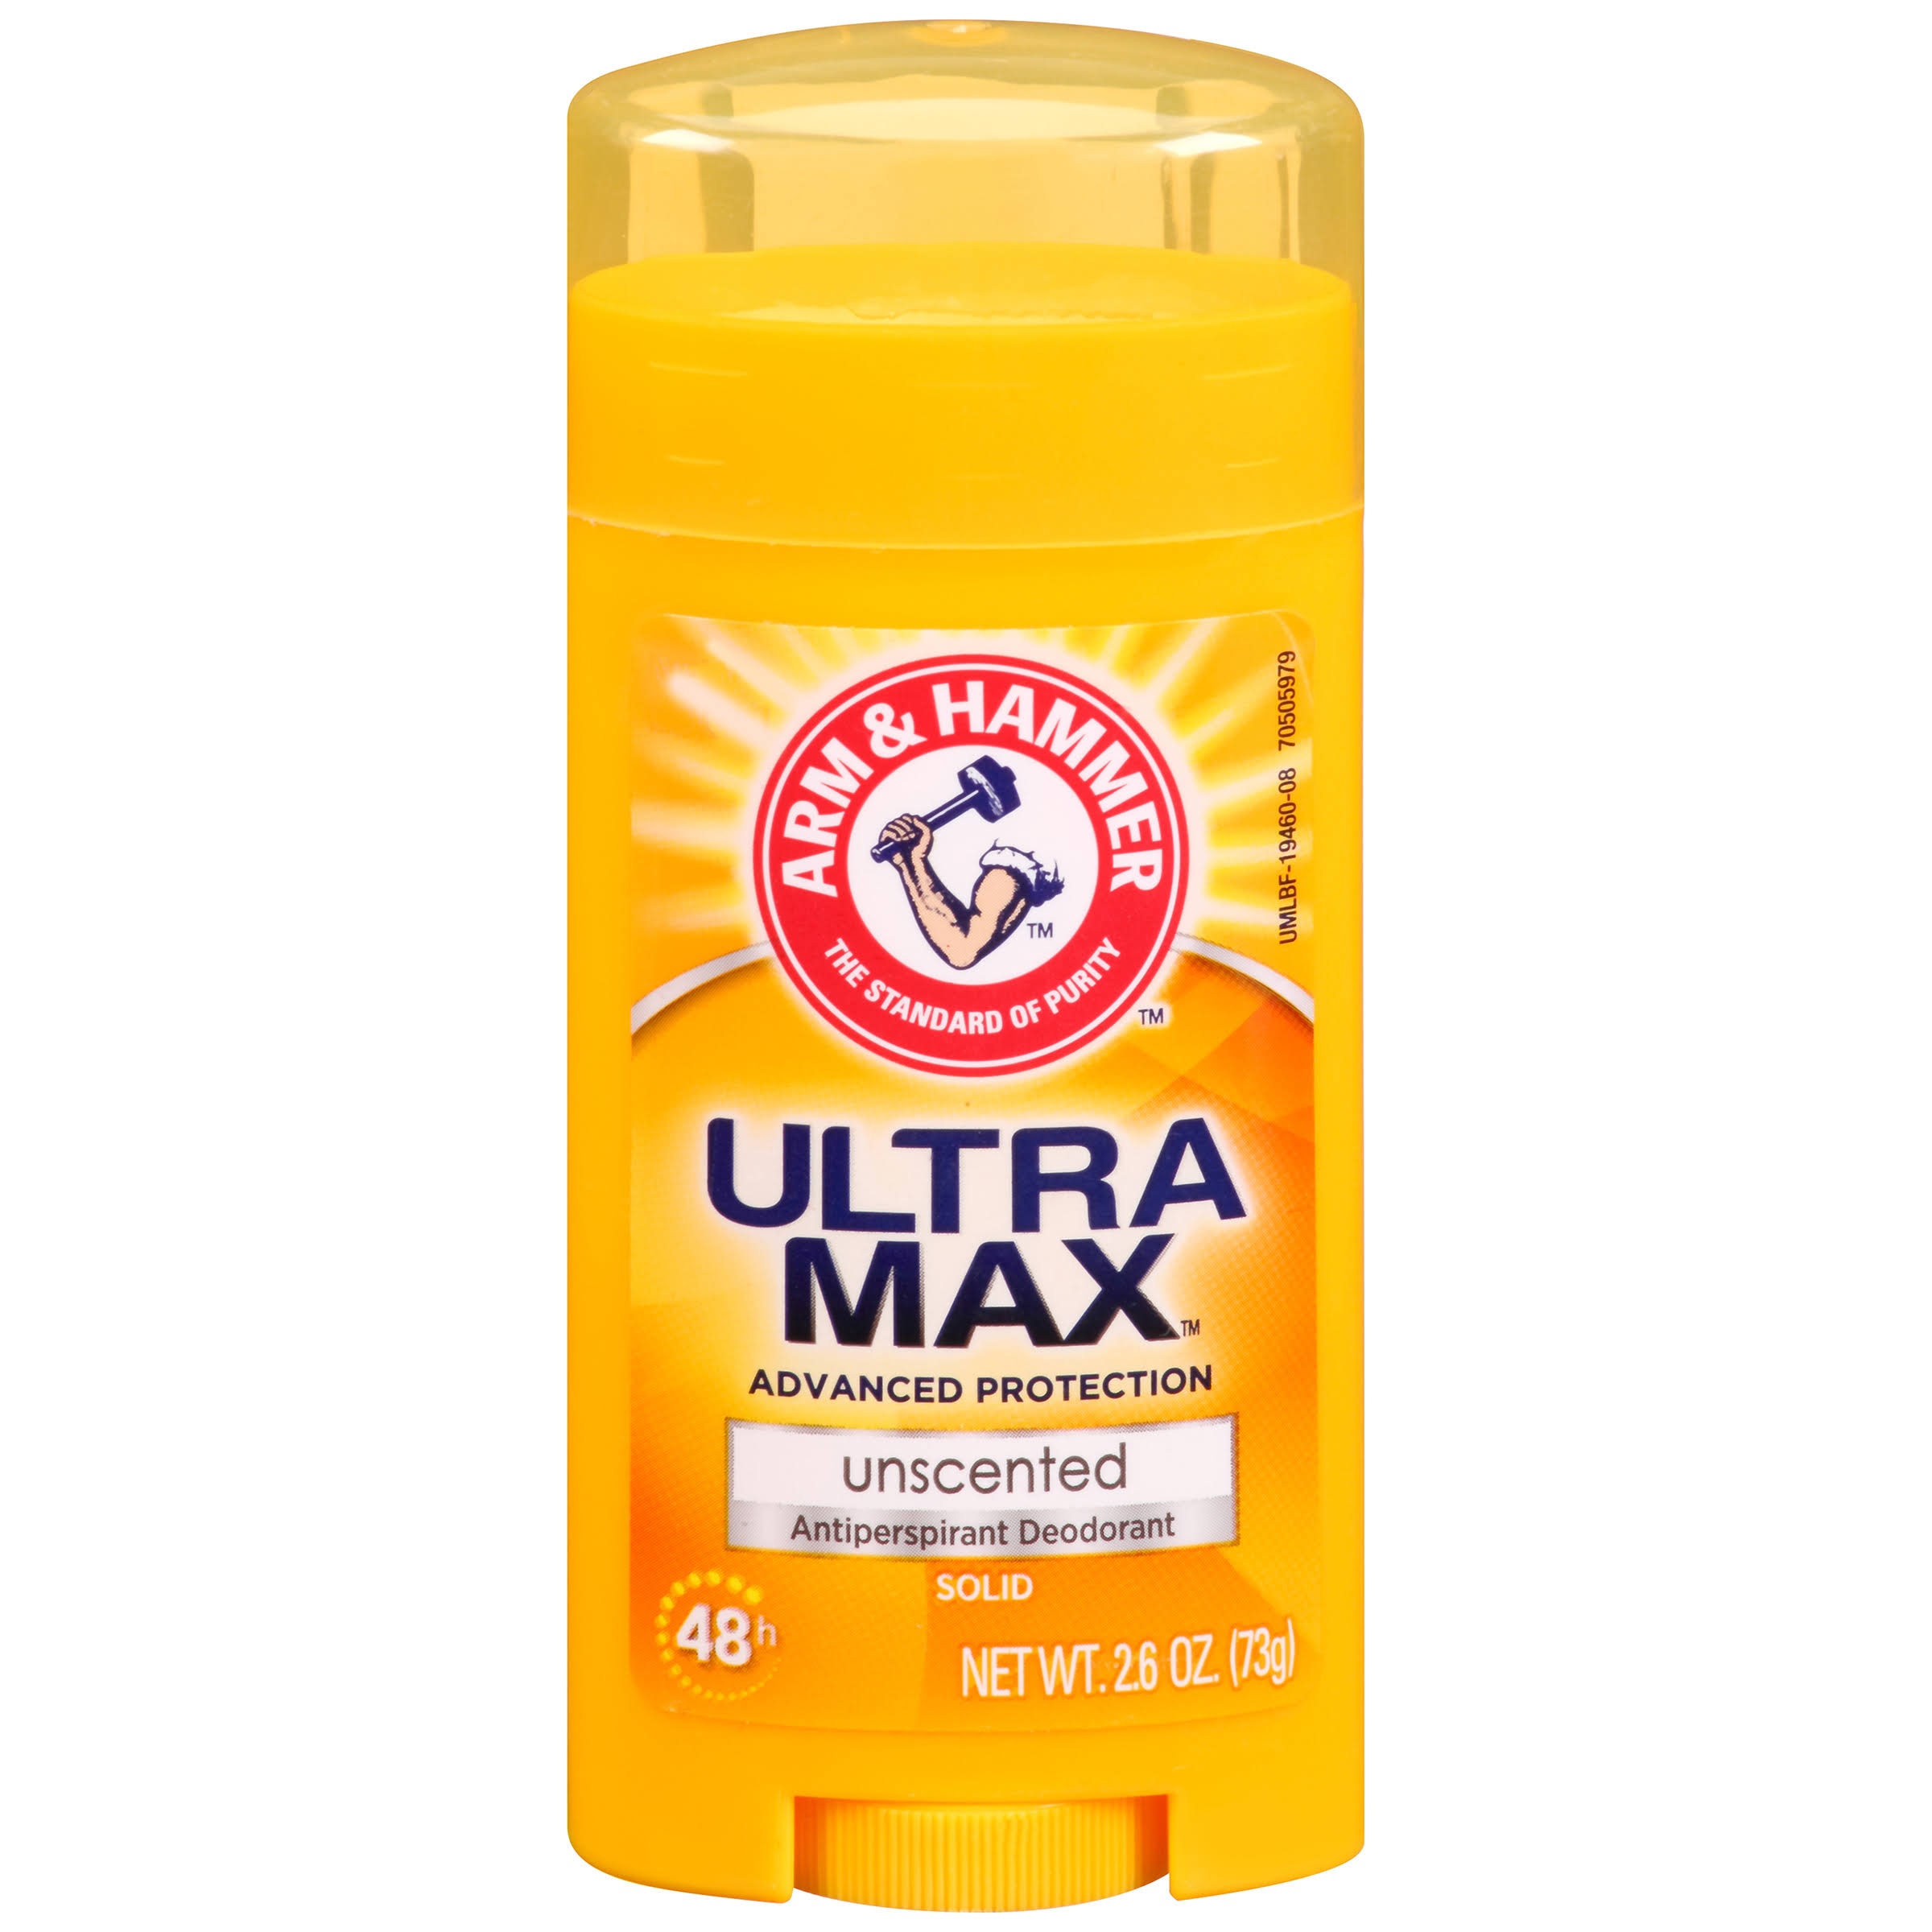 Arm and Hammer UltraMax Invisible Solid Antiperspirant Deodorant - Unscented, 2.6oz